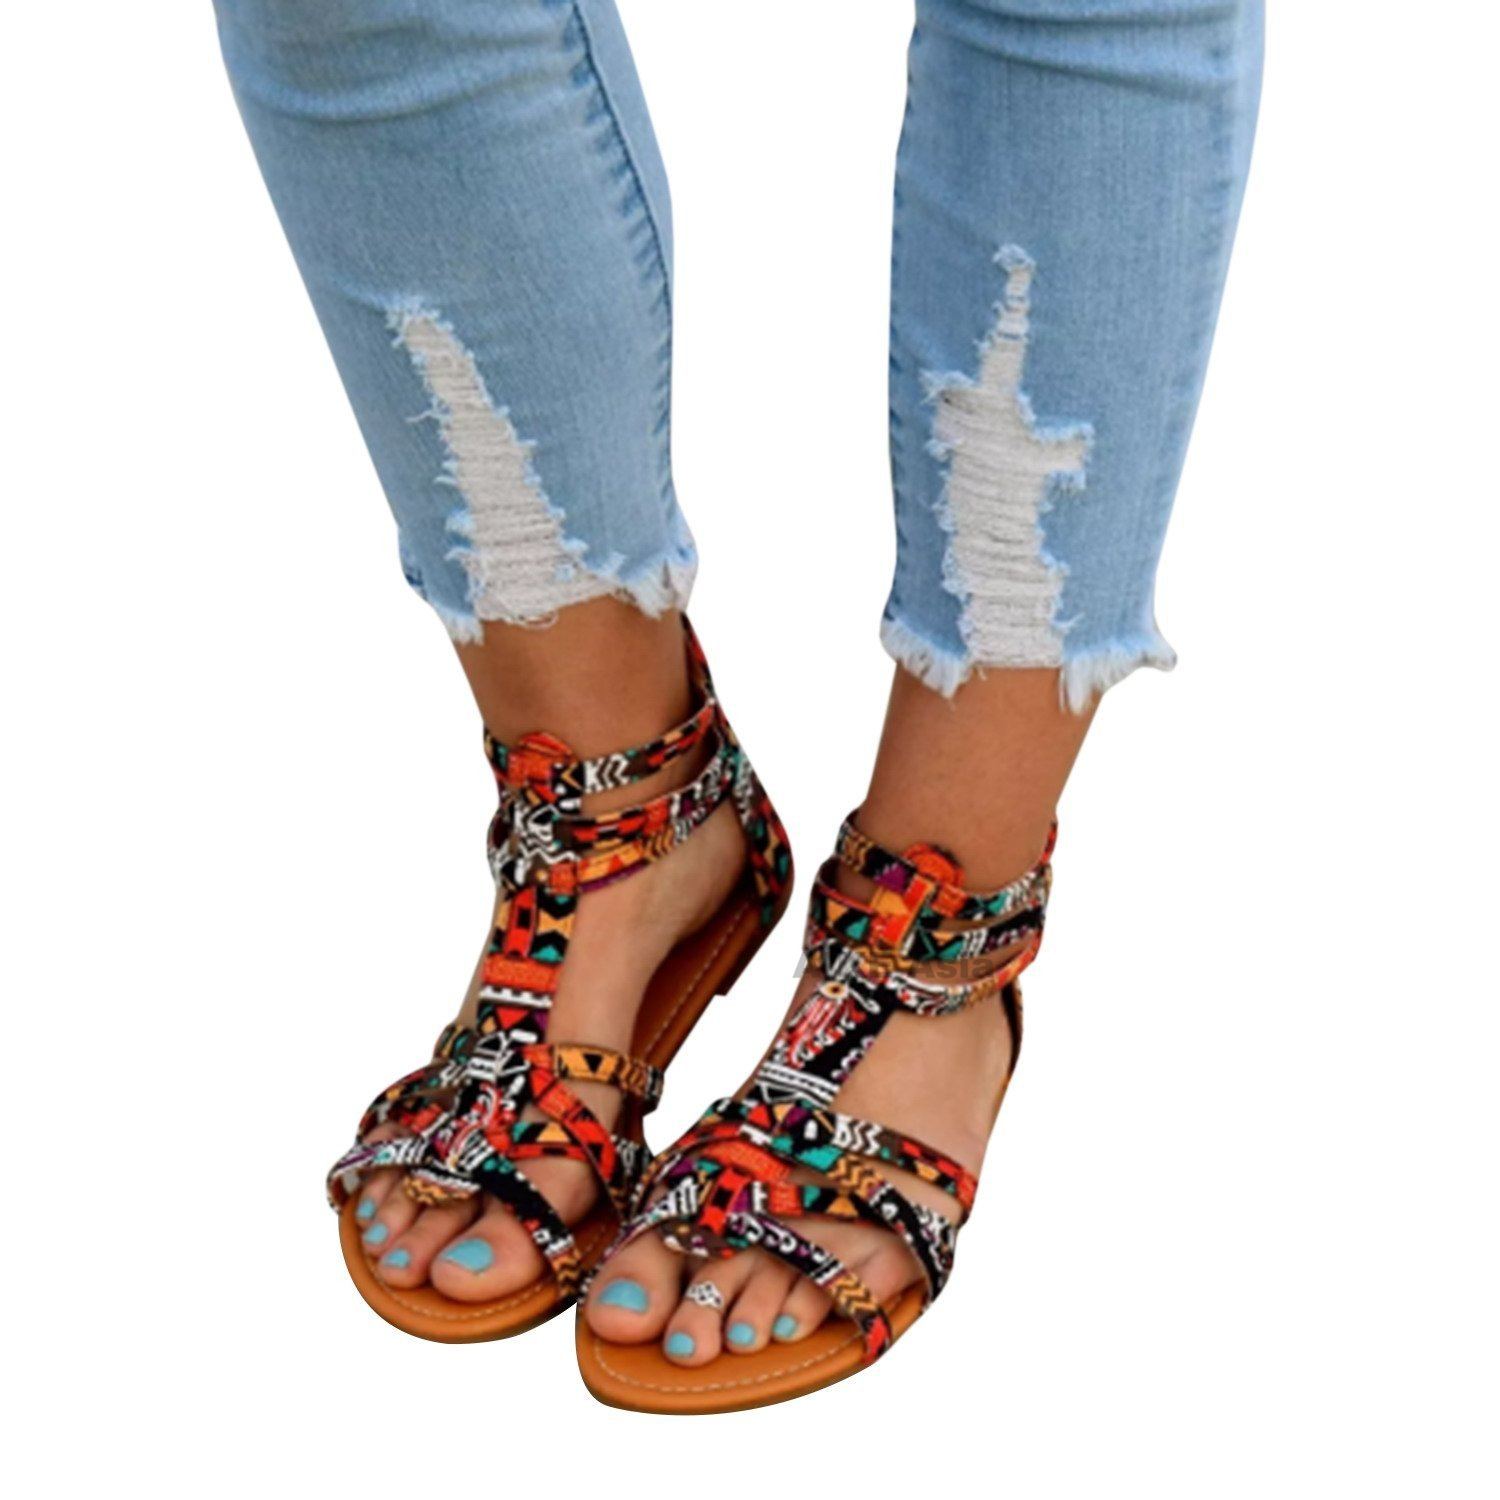 2a26cc09ea Plus Size 34 43 Ethnic Bohemian Summer Woman Pompon Sandals Gladiator Roman  Strappy Embroidered Shoes Women Flat Sandals-in Women's Sandals from Shoes  ...